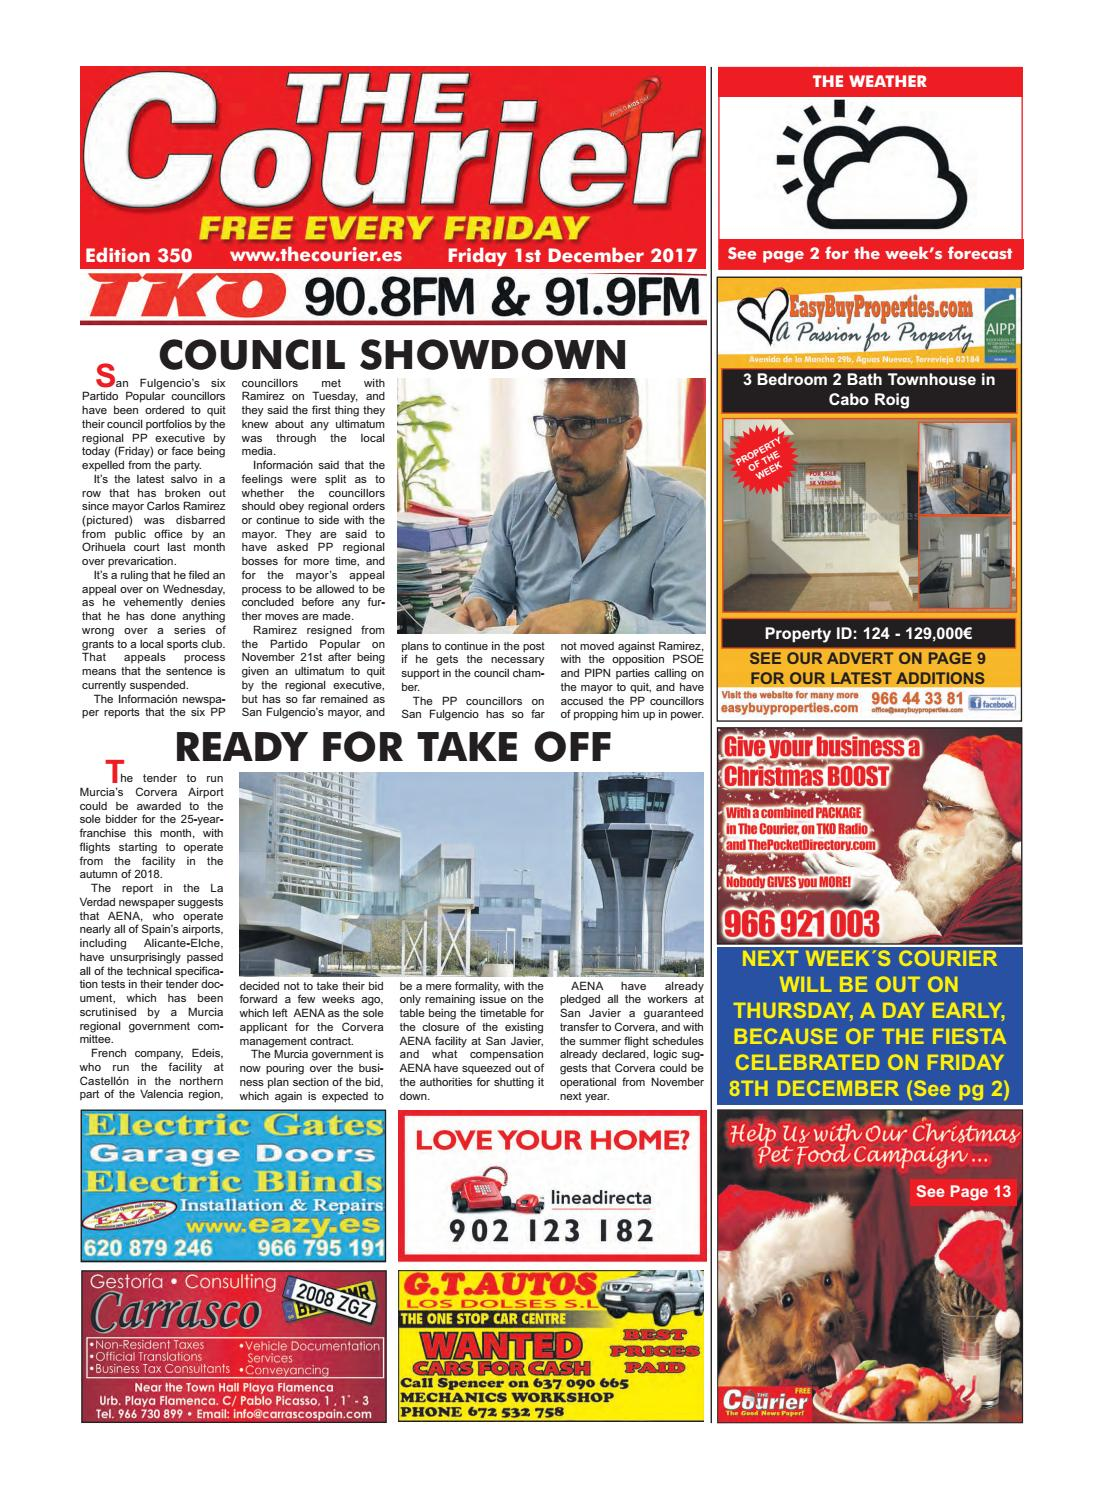 The Courier 350 By The Courier Newspaper Issuu